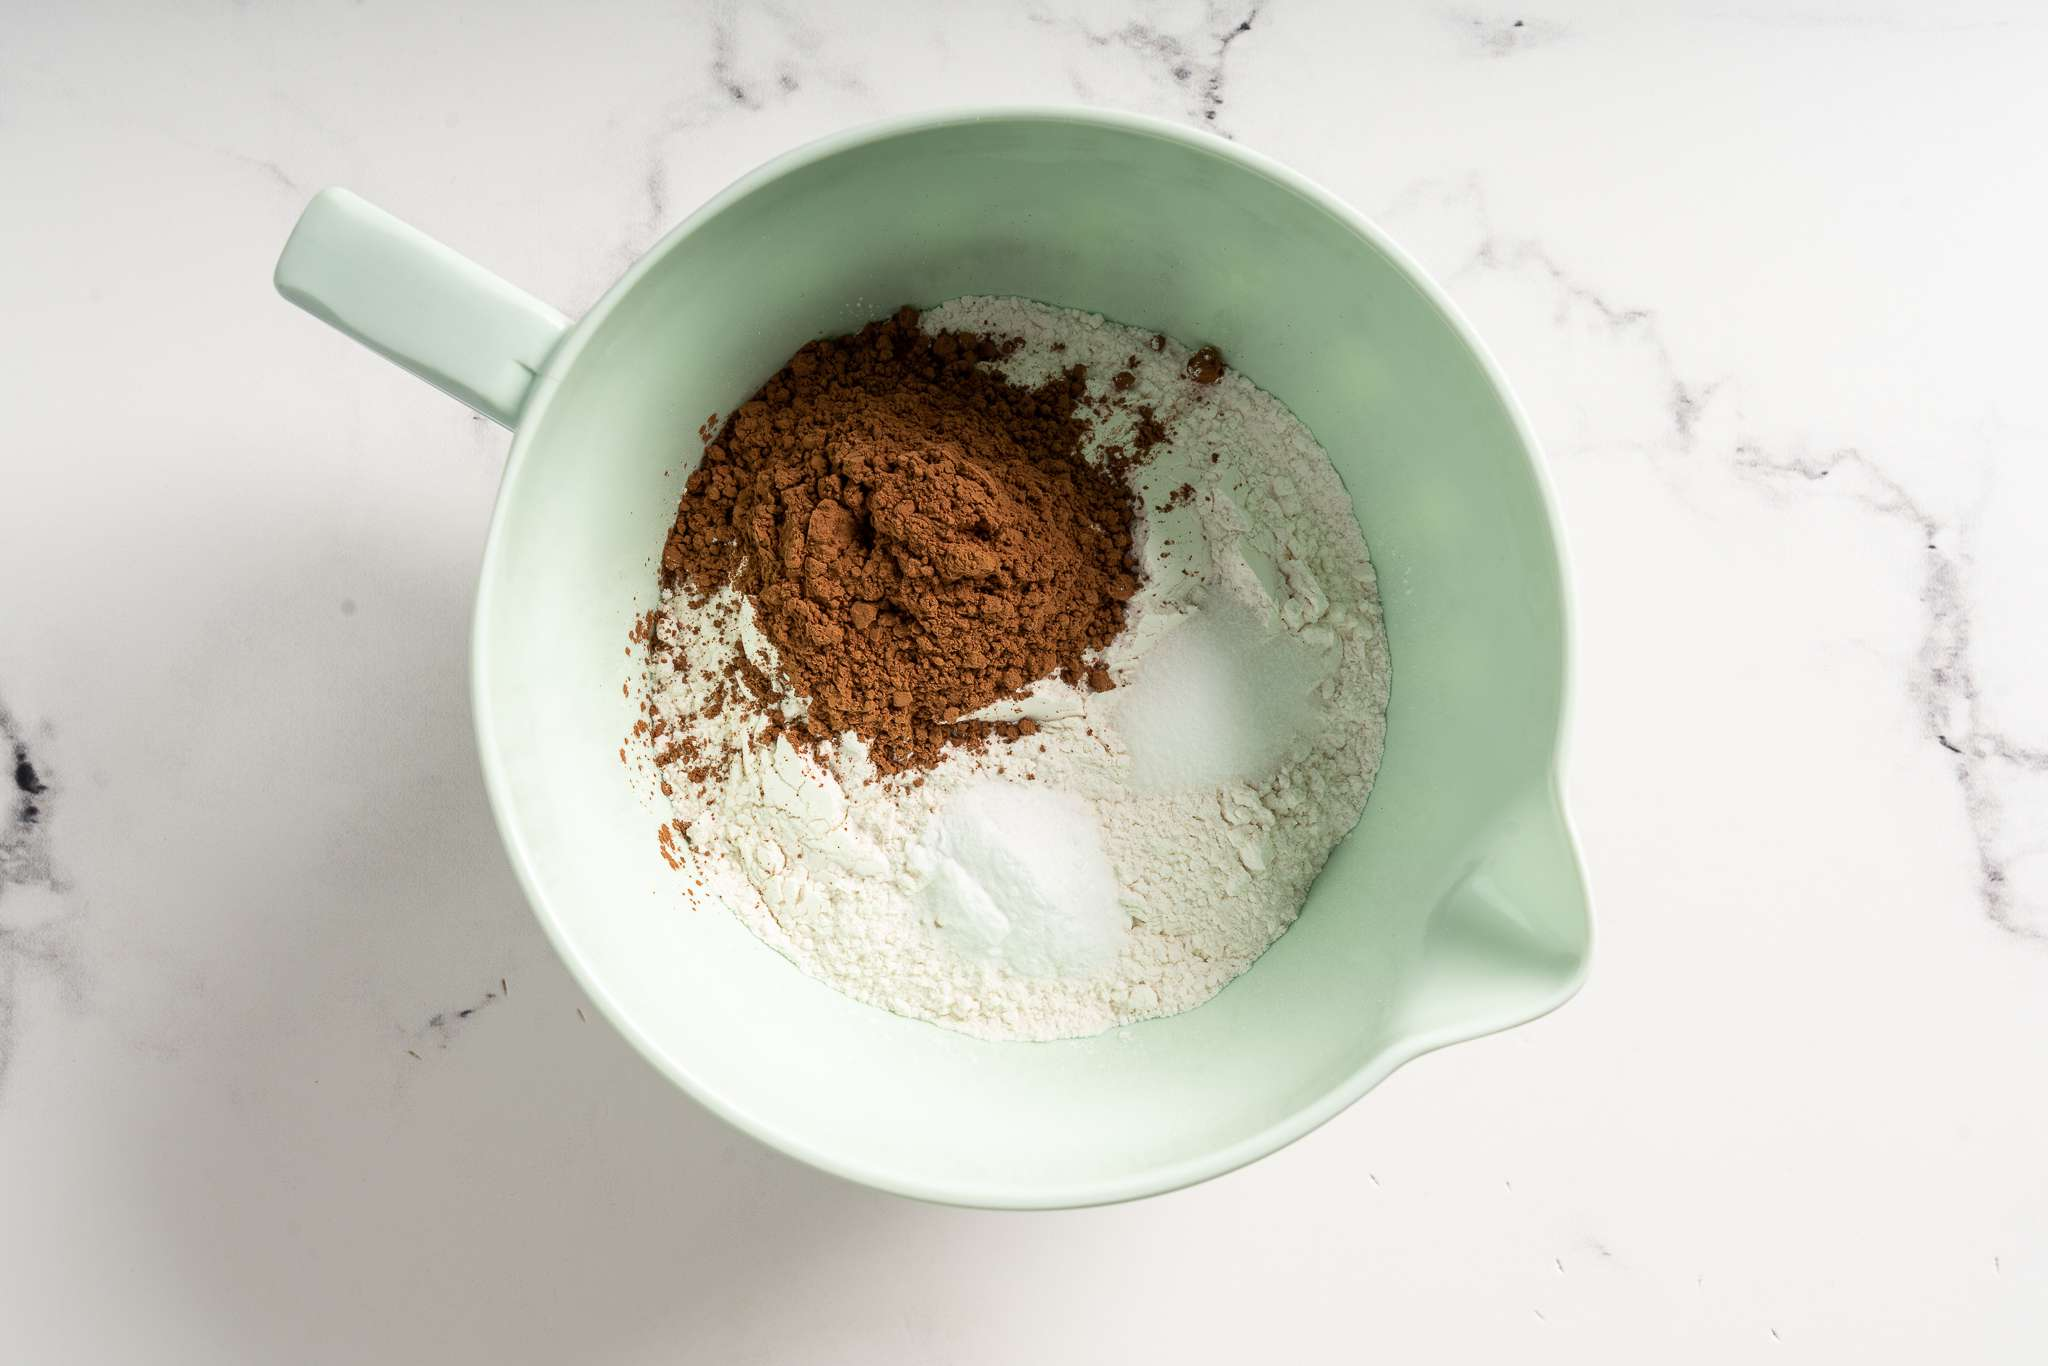 Dry ingredients for Blue Velvet Cake in a mixing bowl